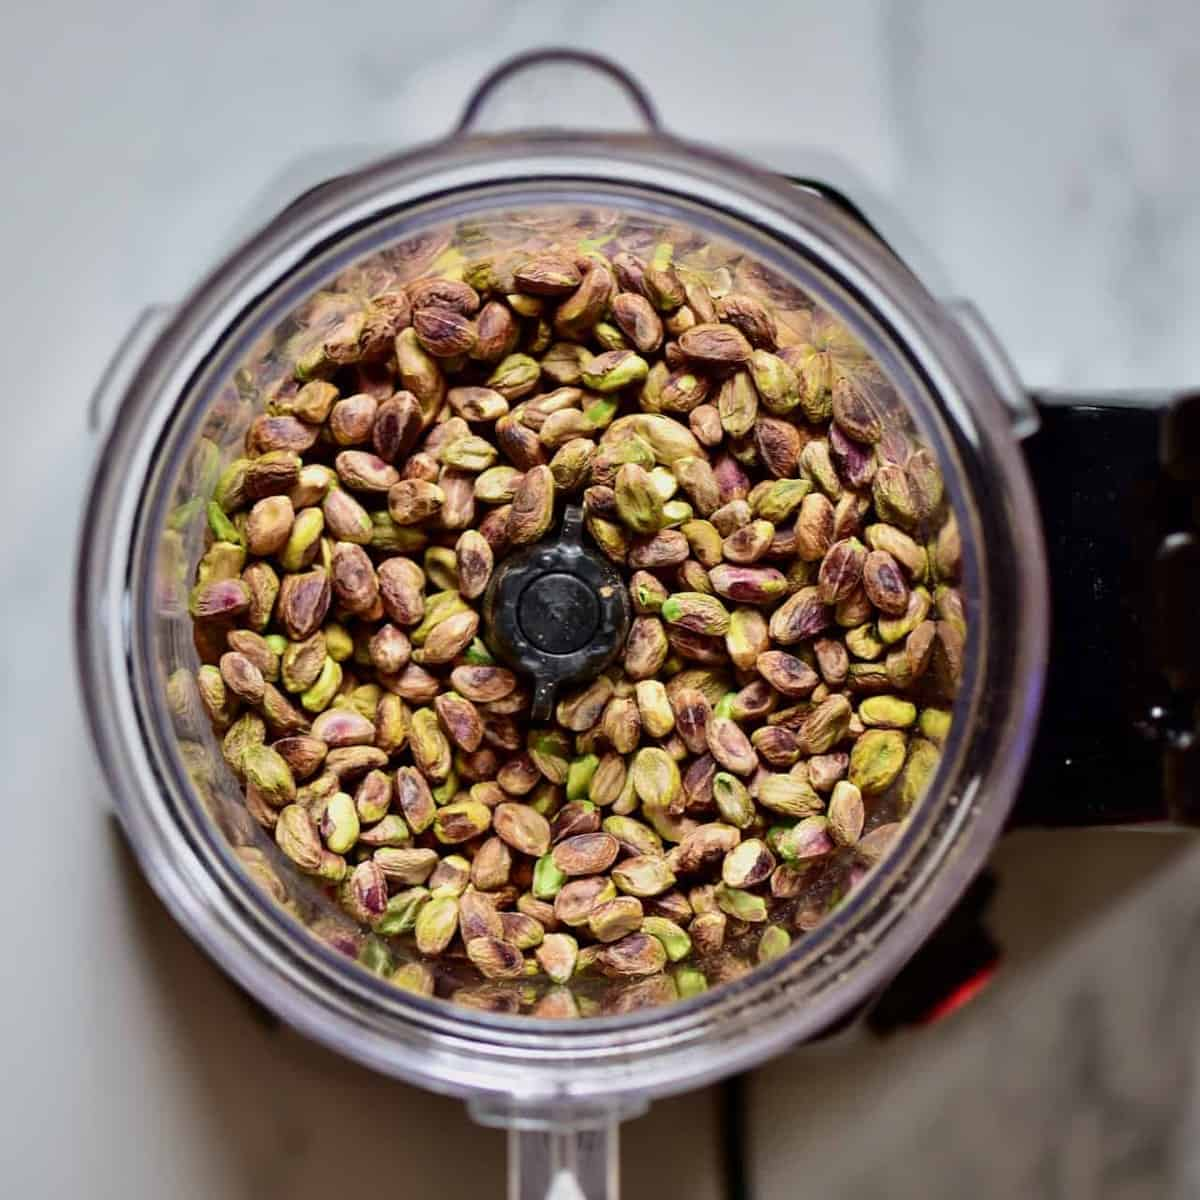 A blender filled with pistachios